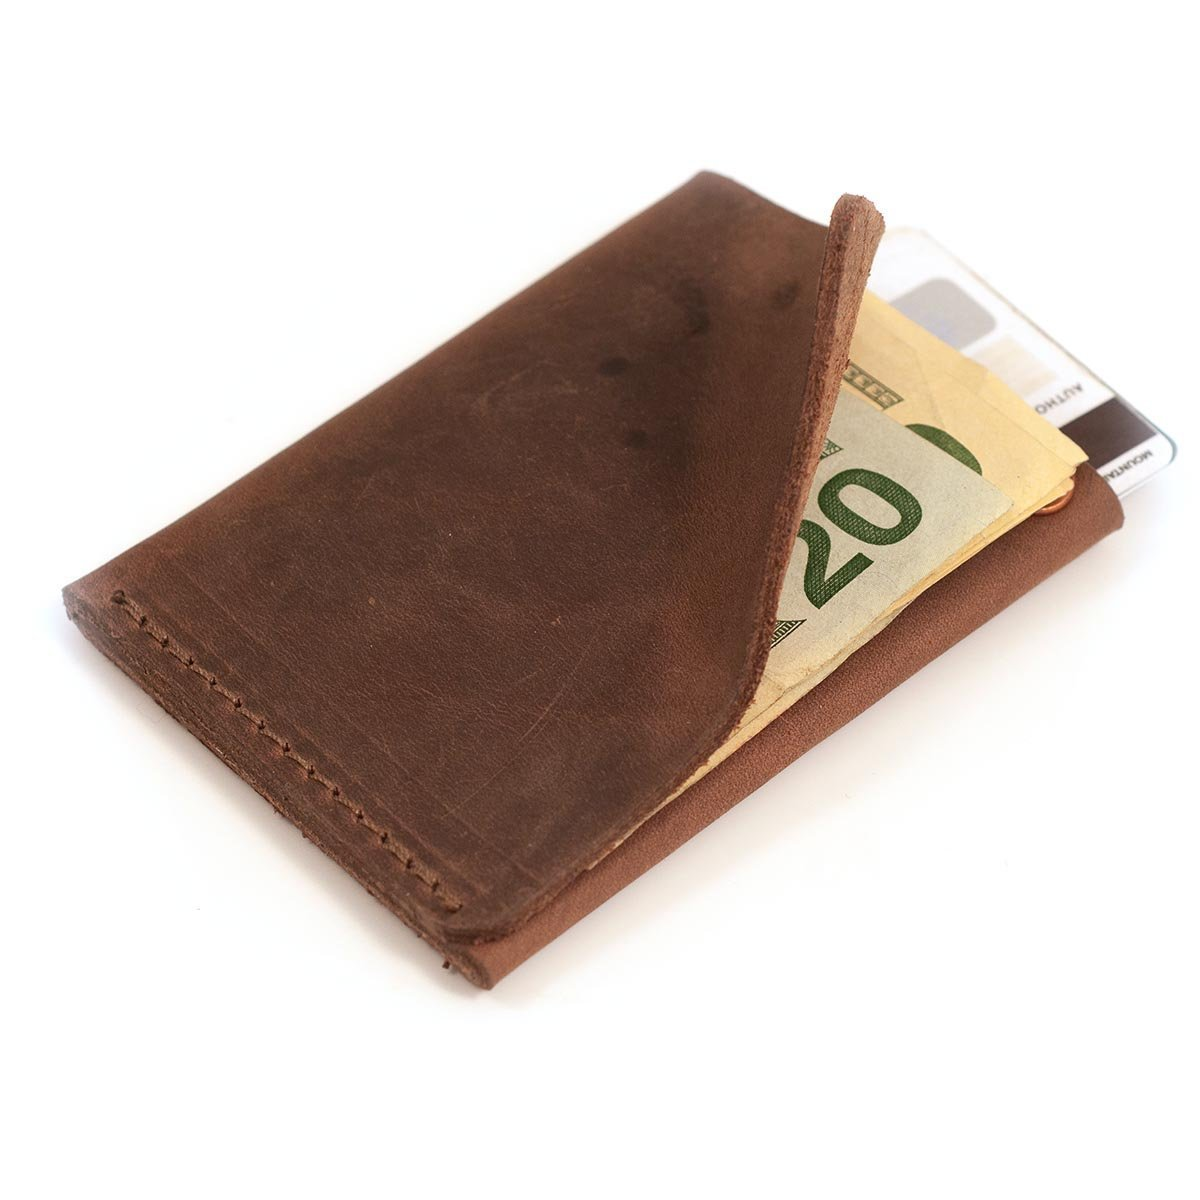 Wallet - Commuter Wallet - Dark Brown